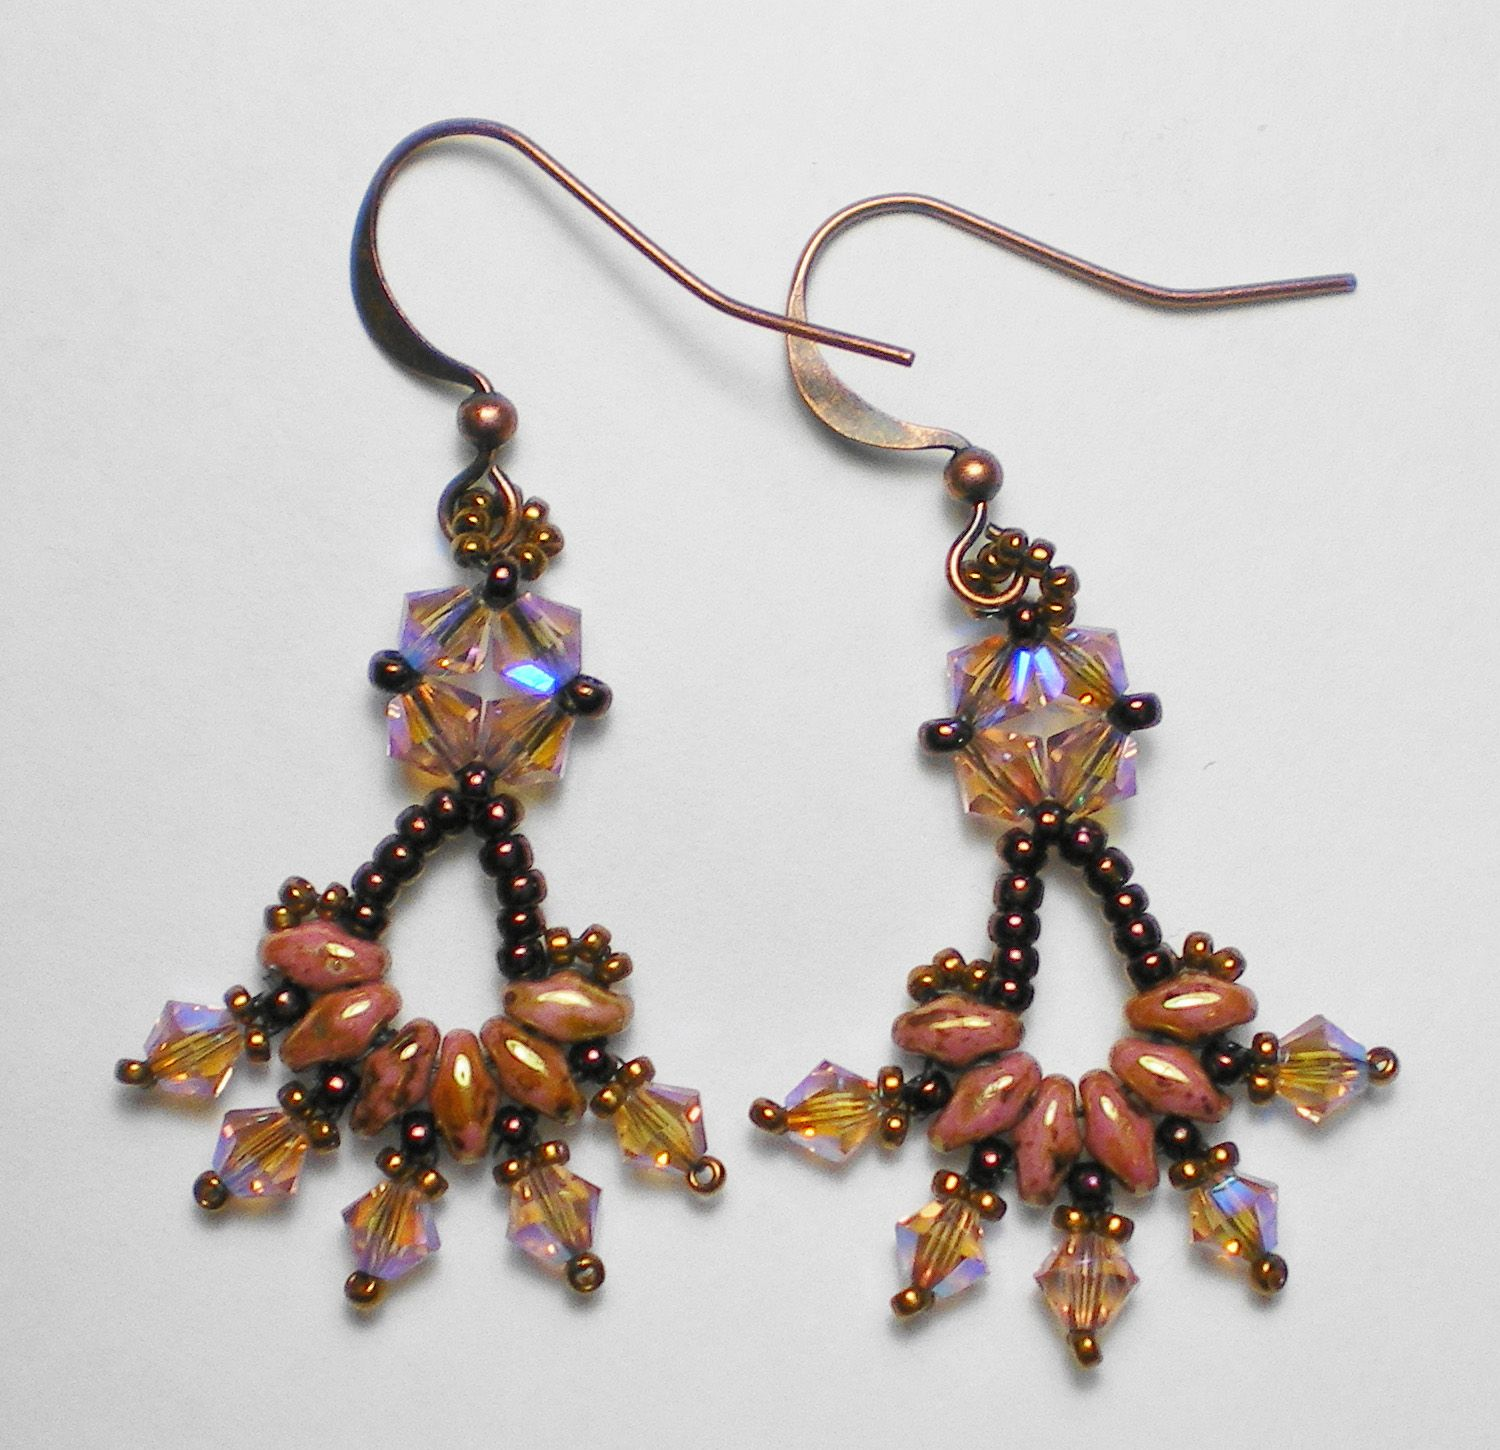 Free Superduo earring pattern - Editors' Blog - Bead Magazine - Online Community, forums, blogs, and photo galleries